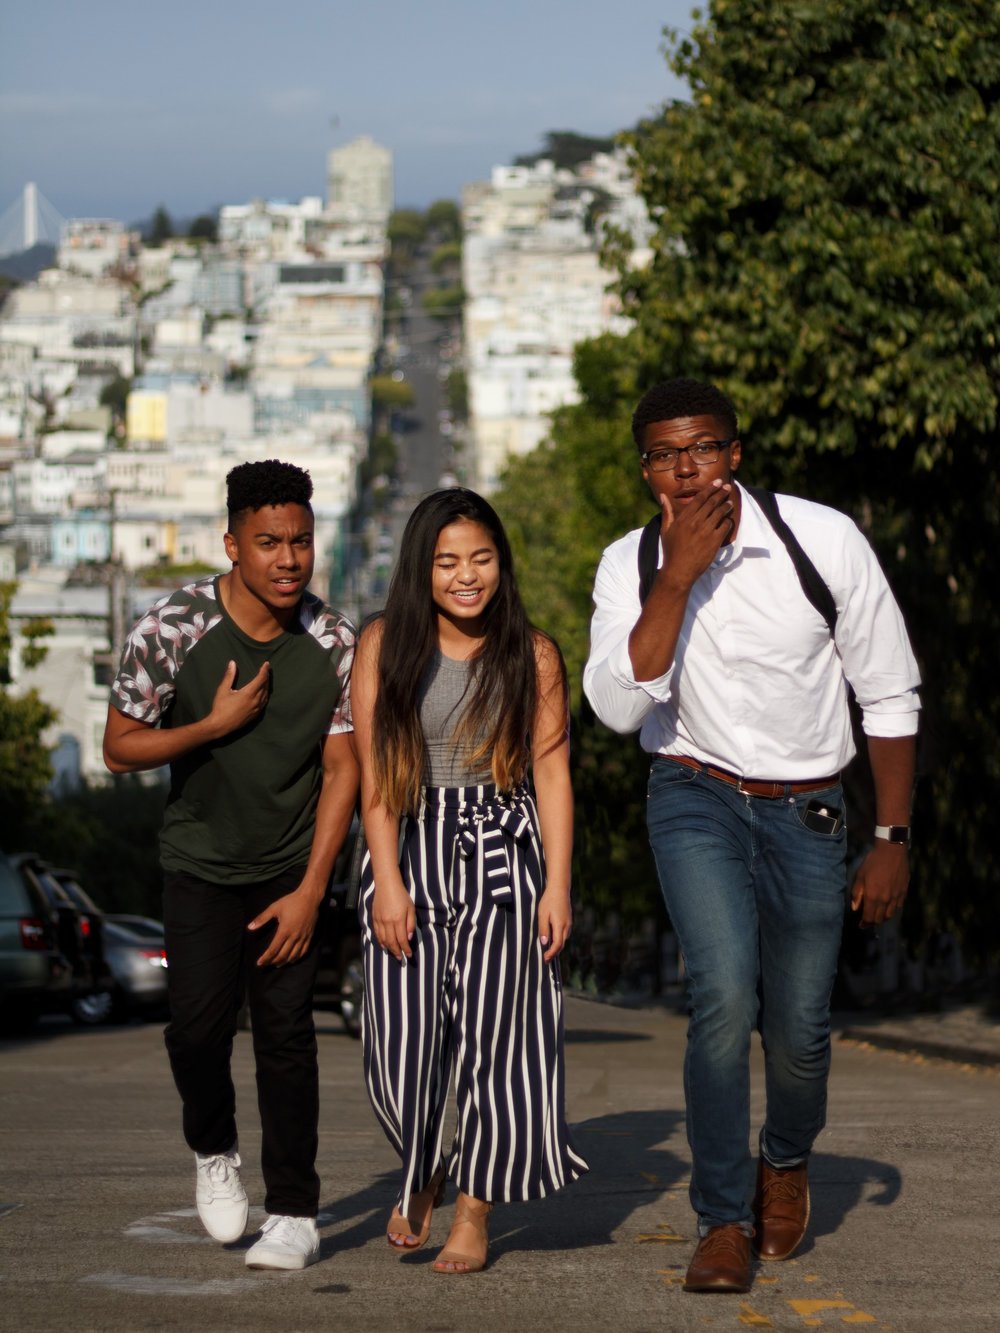 Photo taken by  Christopher Mendoza of my new friends and me exploring the wacky streets of San Francisco. On the left: Steven Bolden (Accenture Intern, Morehouse College). On the right: Kevin Bradford (GE Aviation Intern, University of Dayton).